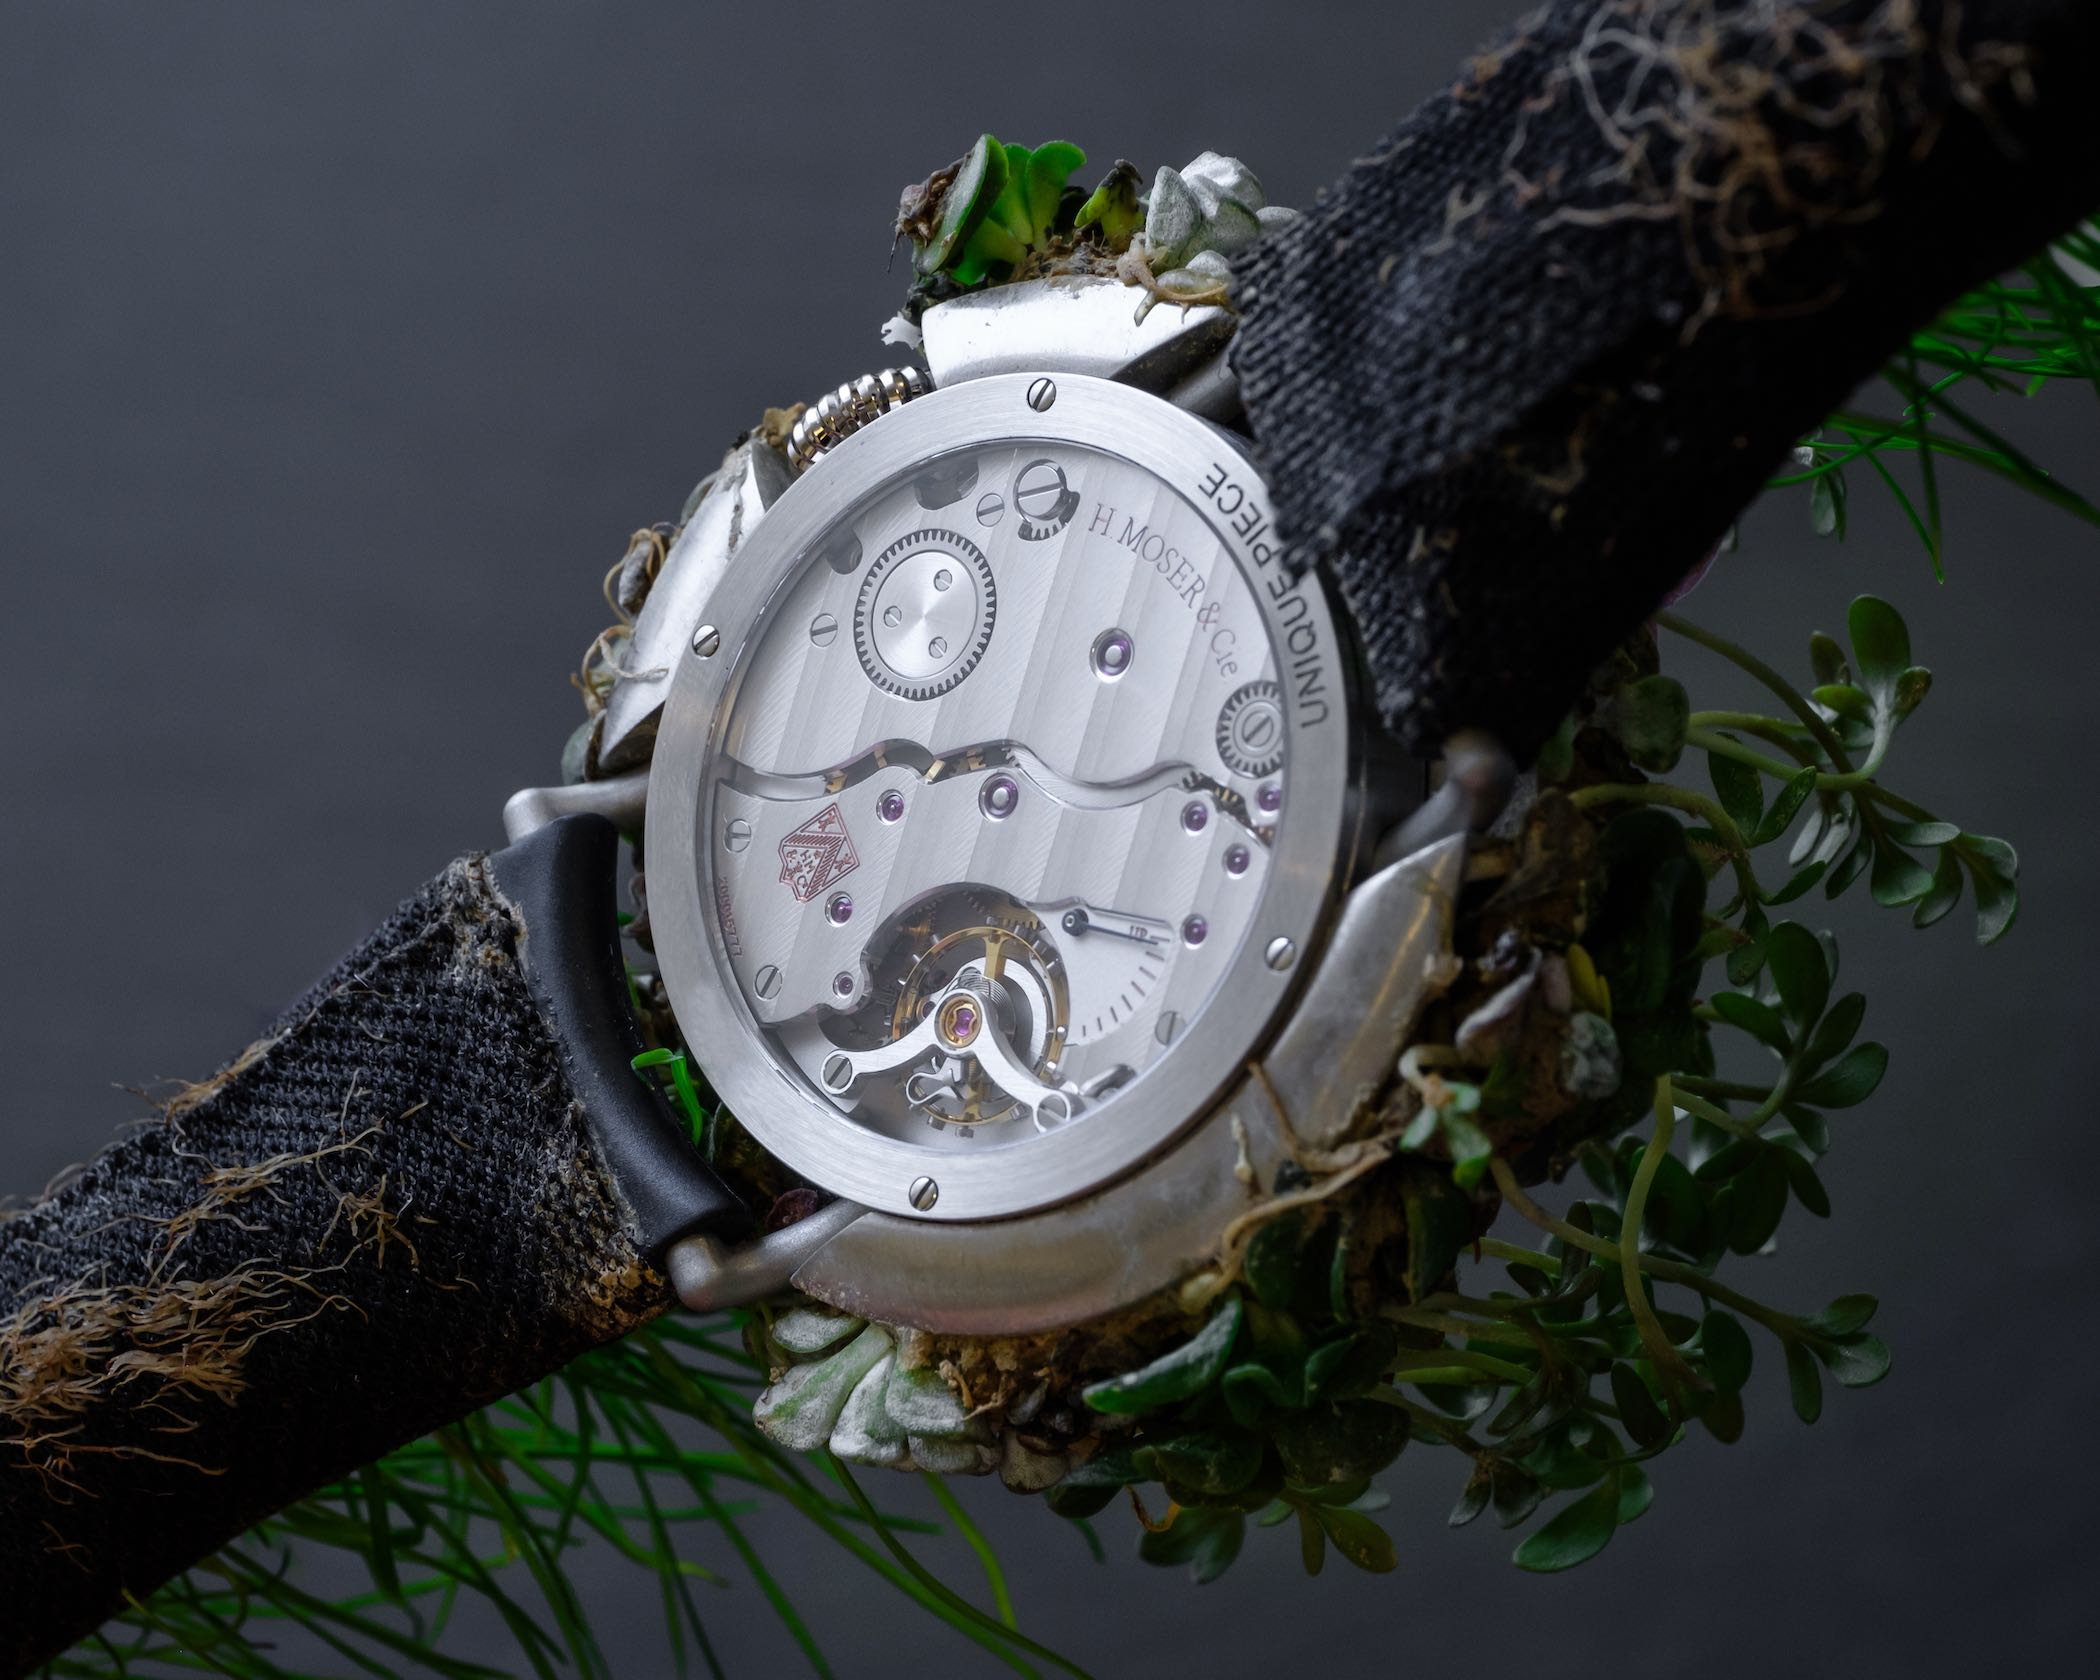 H Moser & Cie Nature Watch Mechanical SIHH 2019